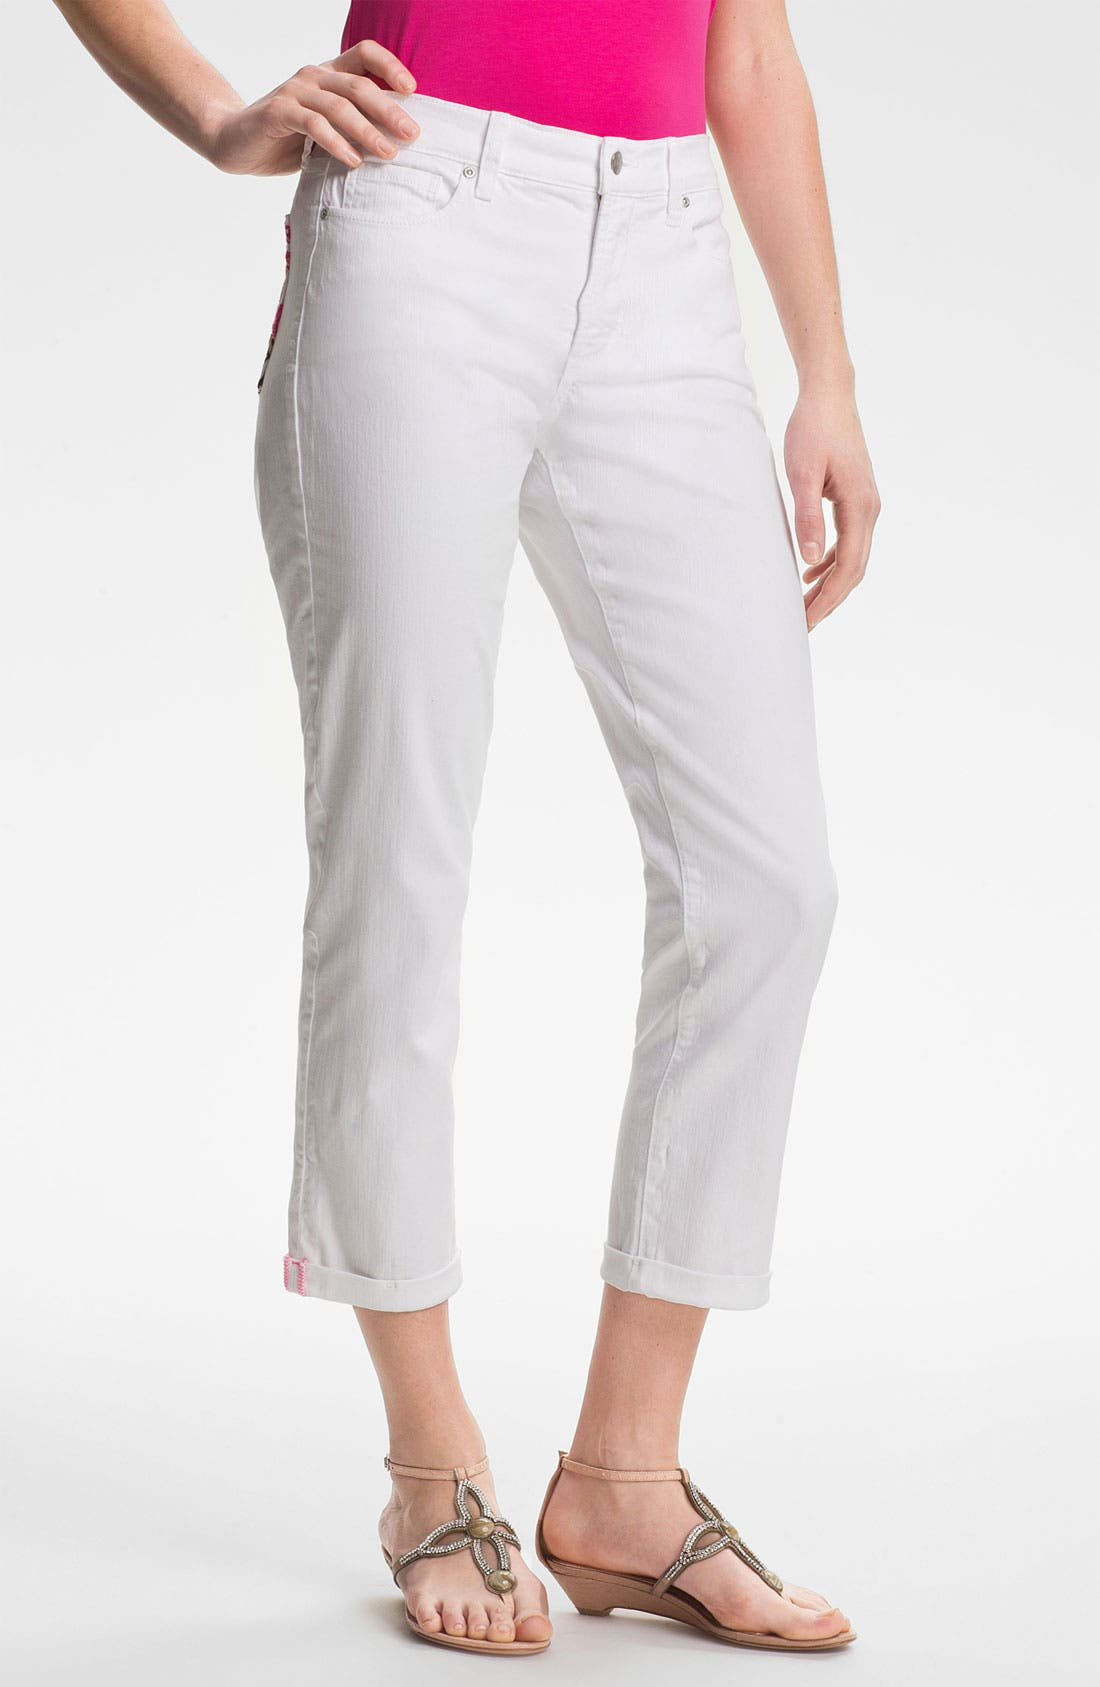 Alternate Image 1 Selected - NYDJ 'Kendall' Cuffed Stretch Crop Jeans (Petite)